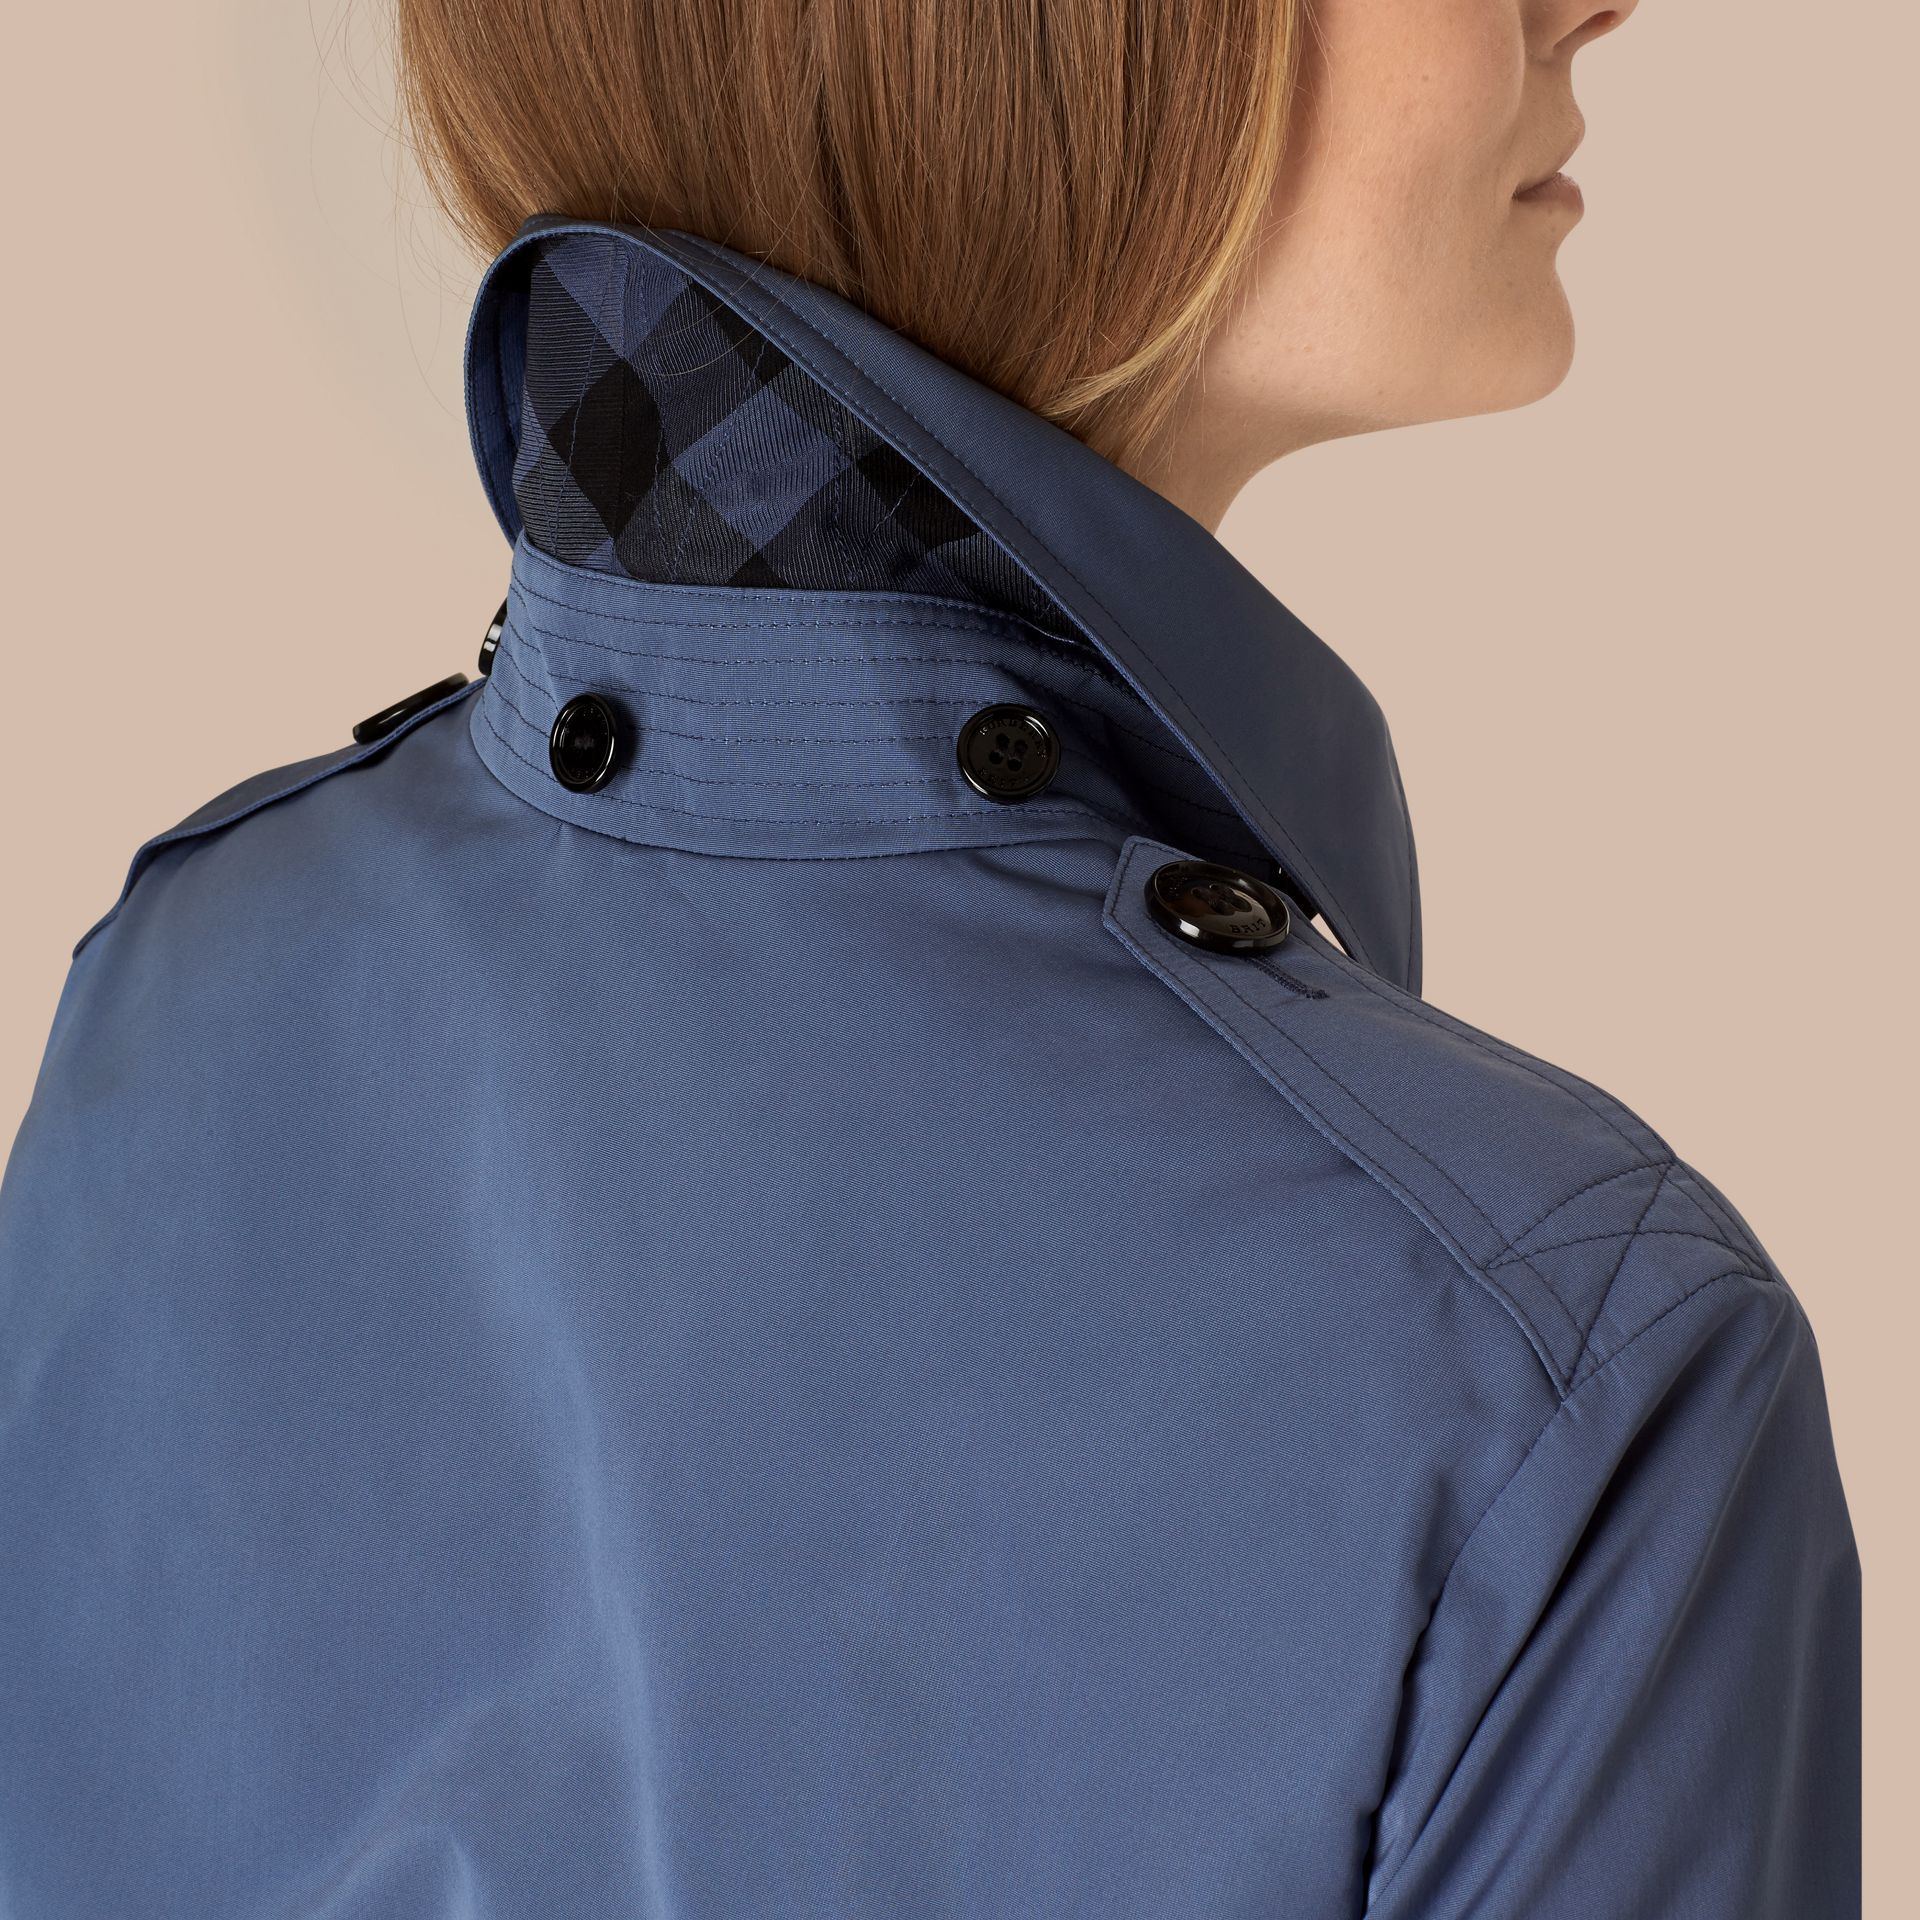 Pale lupin blue Showerproof Trench Coat with Detachable Hood Pale Lupin Blue - gallery image 2